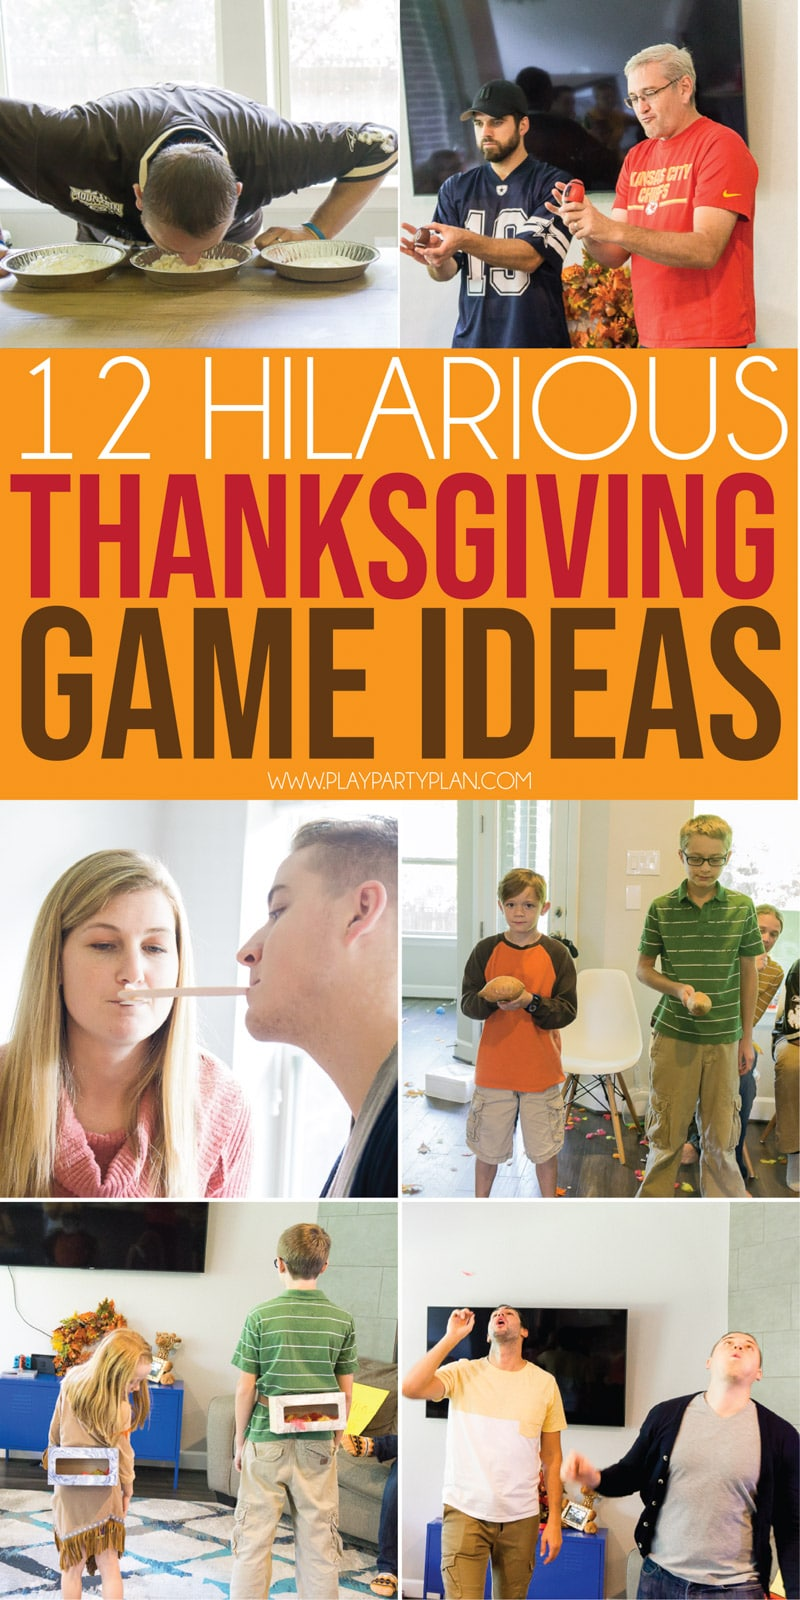 12 Hilarious Thanksgiving Games for All Ages  Play Party Plan - Fun thanksgiving games, Thanksgiving games, Funny games for groups, Thanksgiving games for kids, Thanksgiving games for adults, Thanksgiving fun - The best Thanksgiving games ever! 12 hilarious Thanksgiving party games that both kids and adults will love  perfect for Thanksgiving or Friendsgiving!